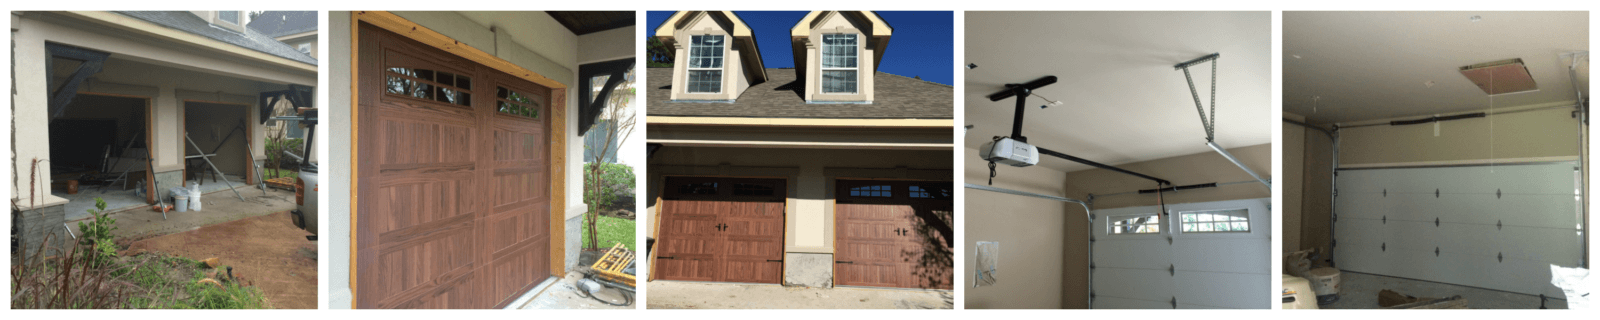 Garage & Gate Service Pros Projects Gallery